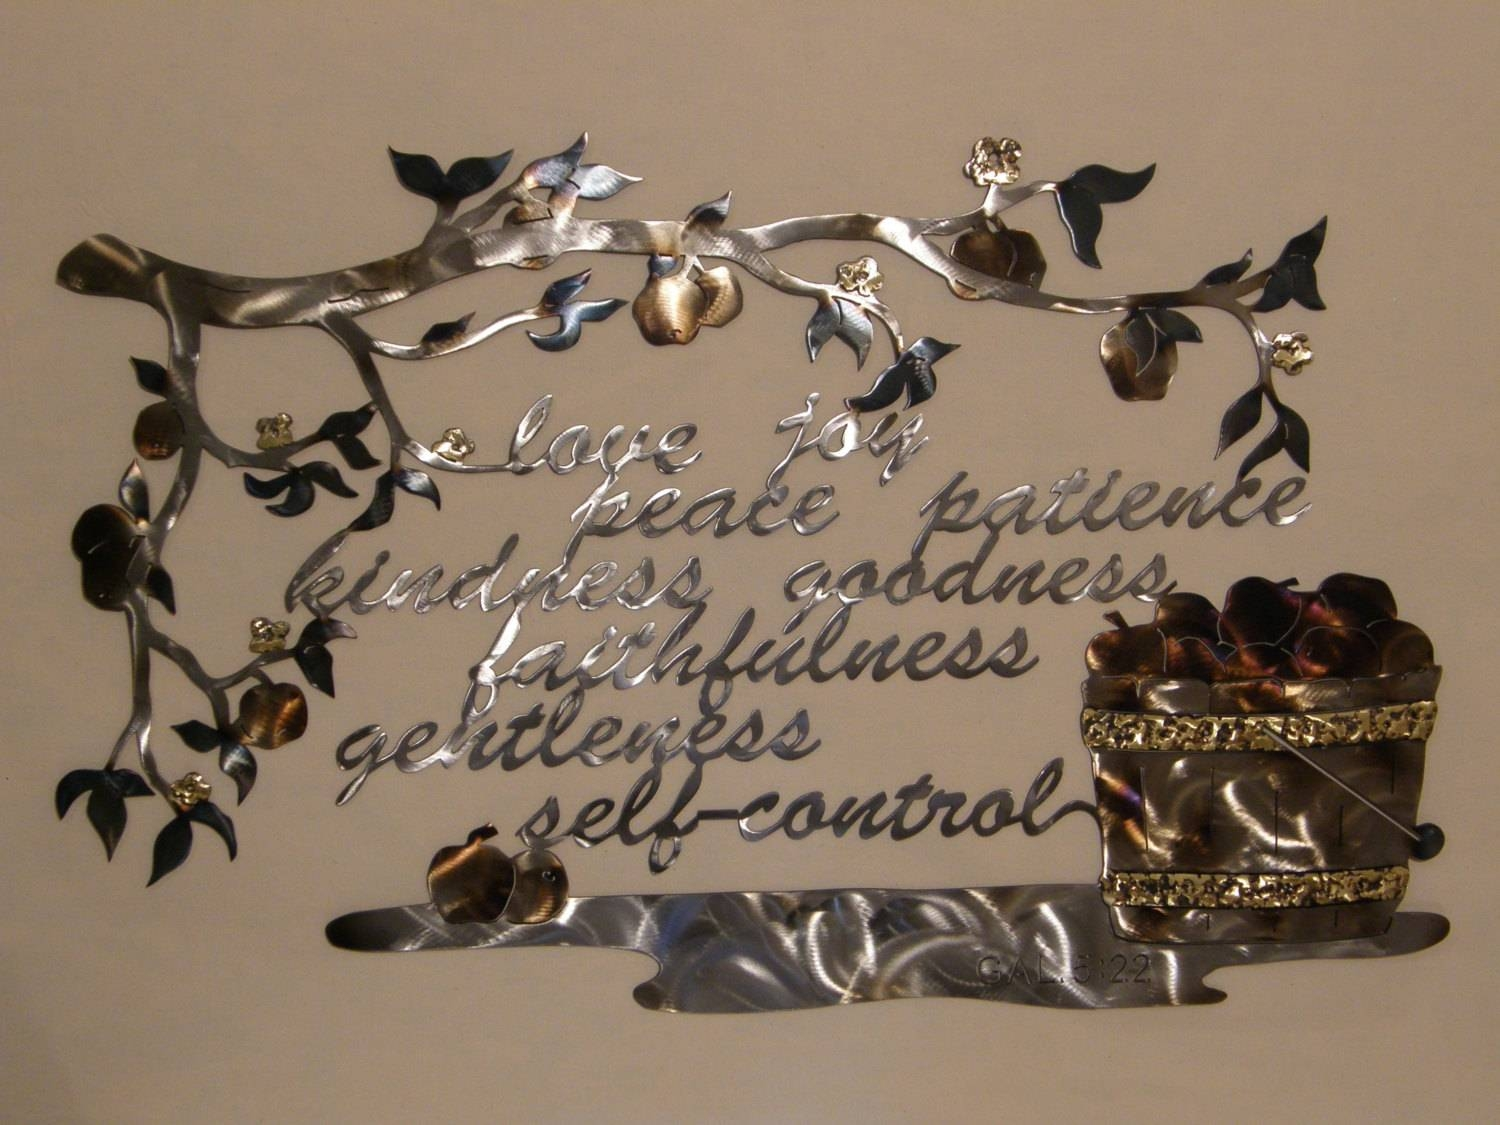 Metal Wall Sculpture Of Fruit Of The Spirit Pertaining To 2018 Fruit Of The Spirit Wall Art (View 13 of 30)